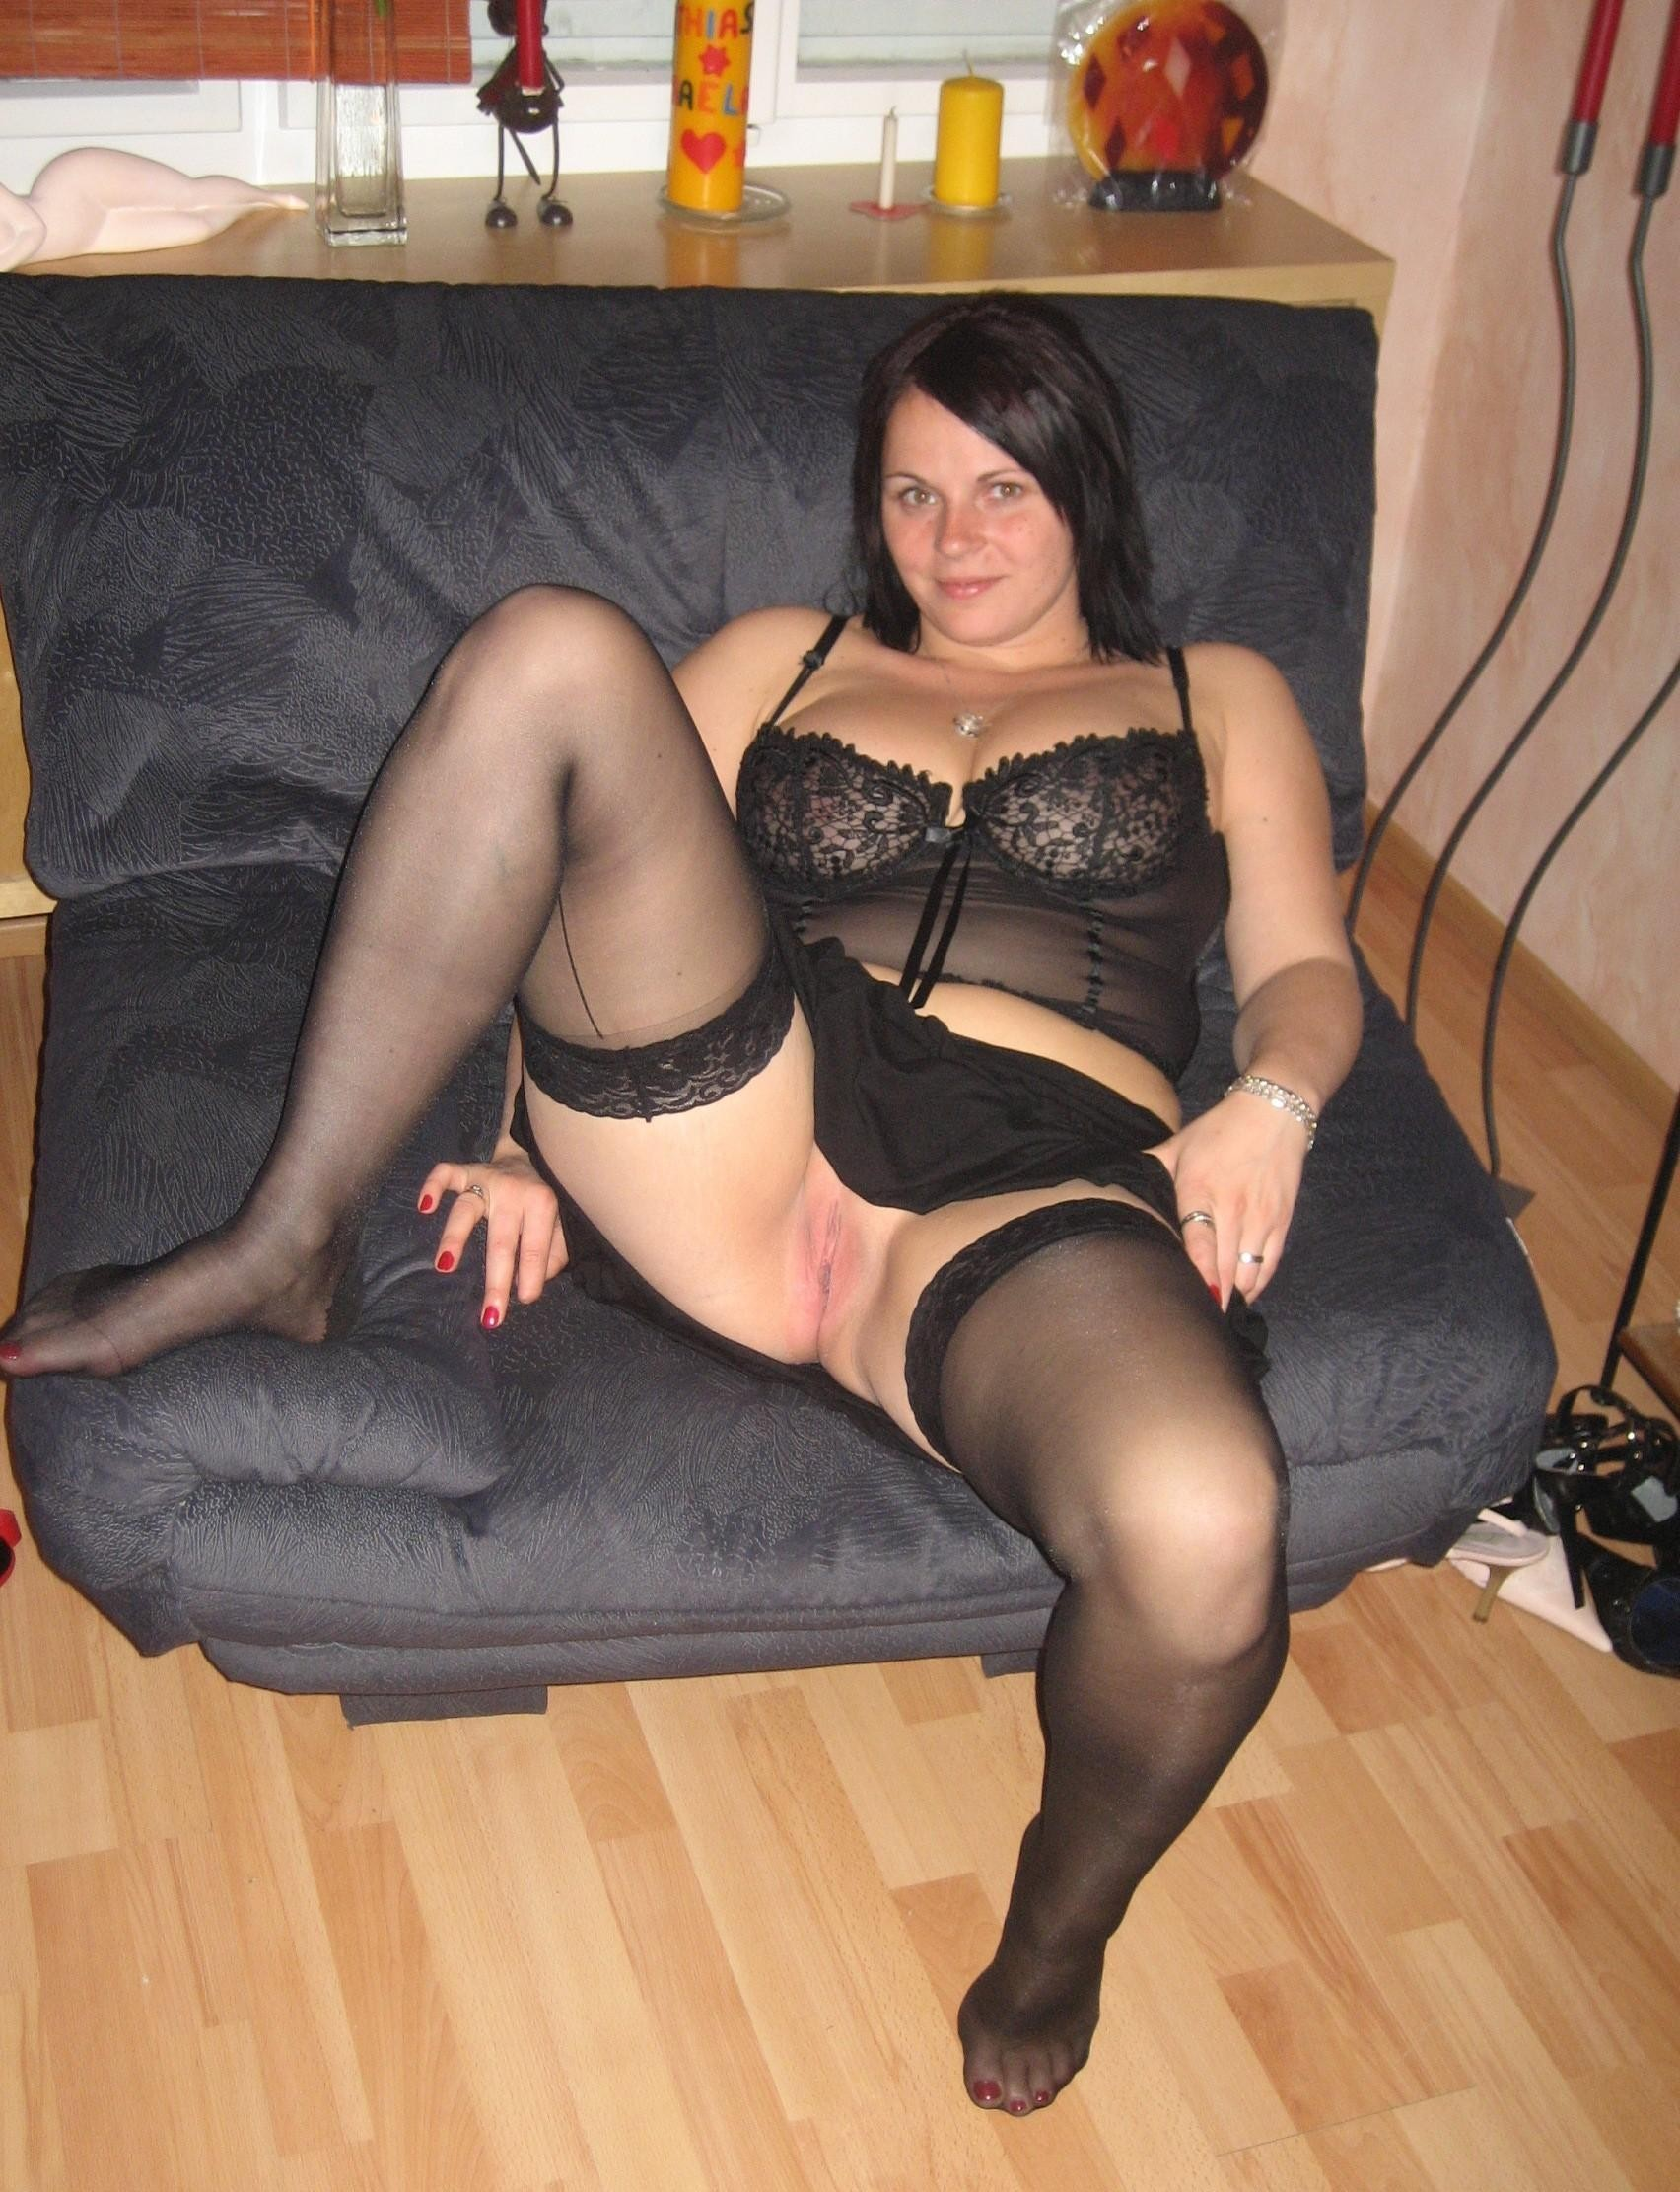 Apologise, mature nudes in nylons are similar